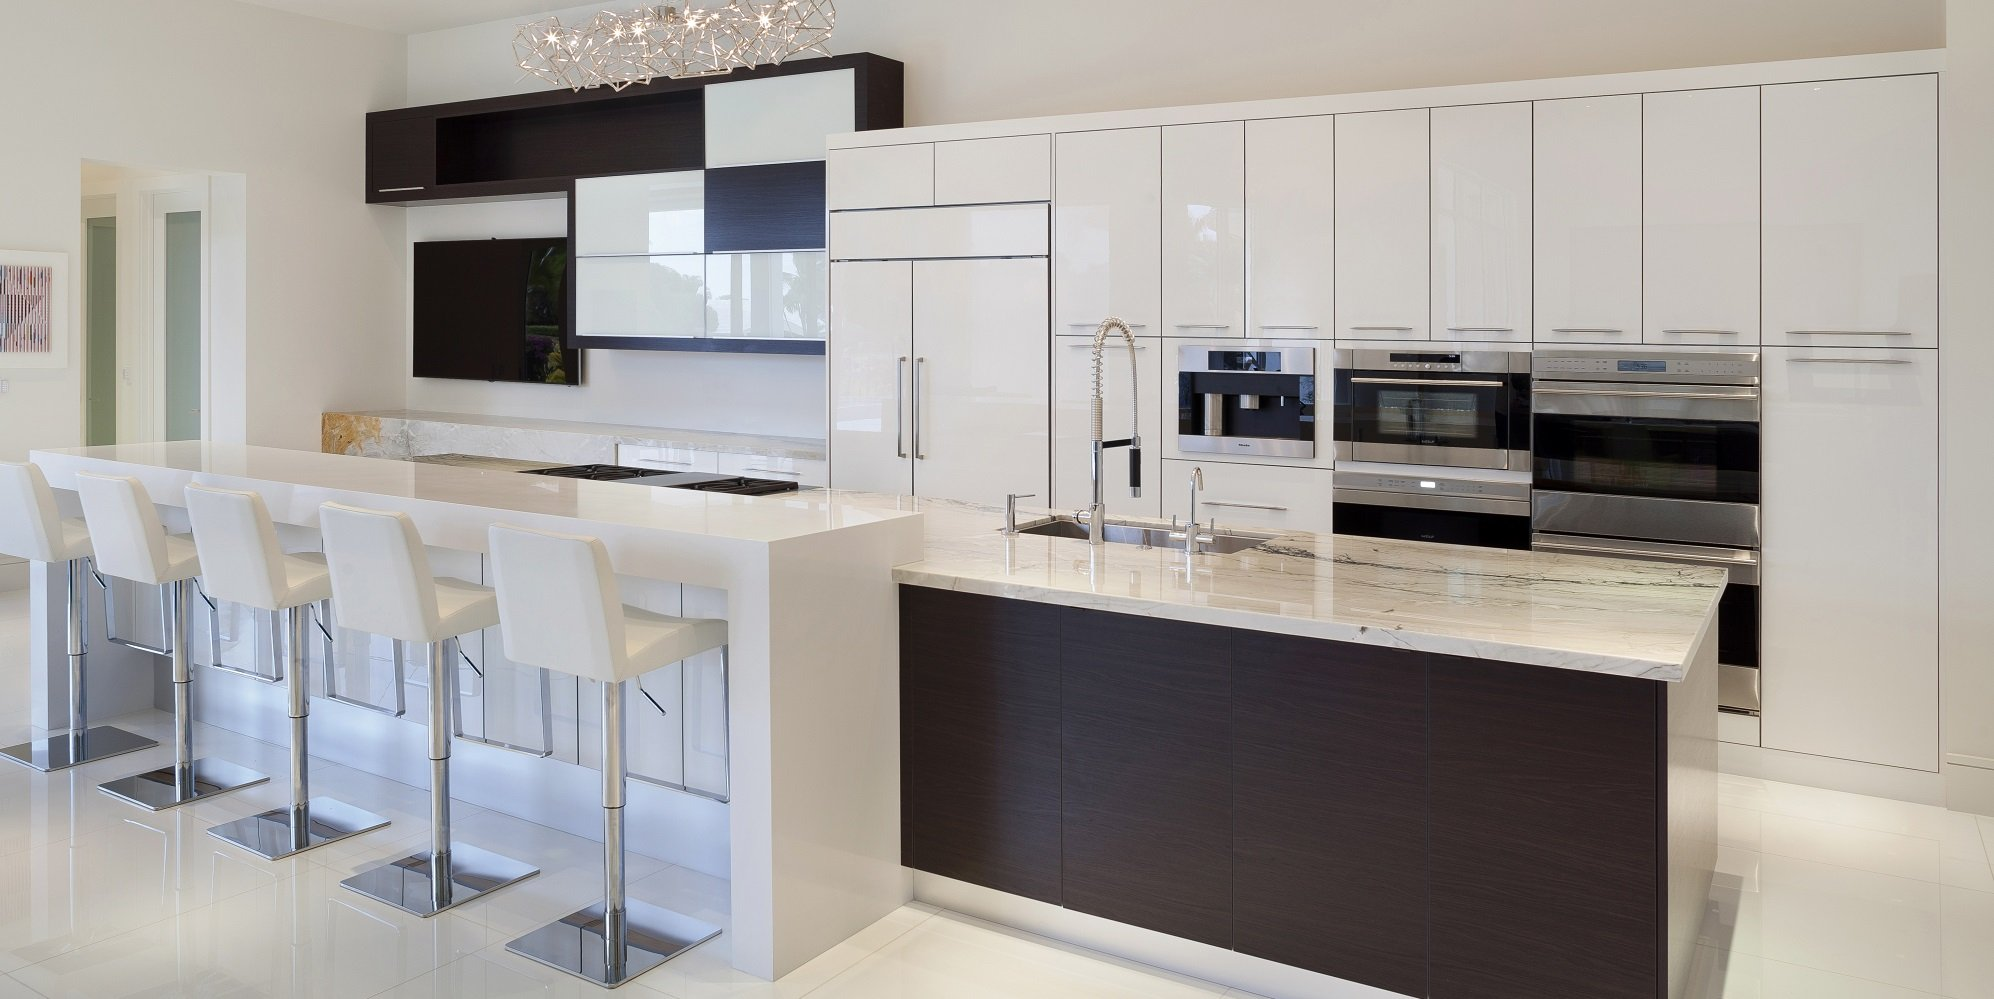 Bathroom Furniture Kitchen Remodeling Boca Raton boca raton kitchen remodeling by kitchens floors image